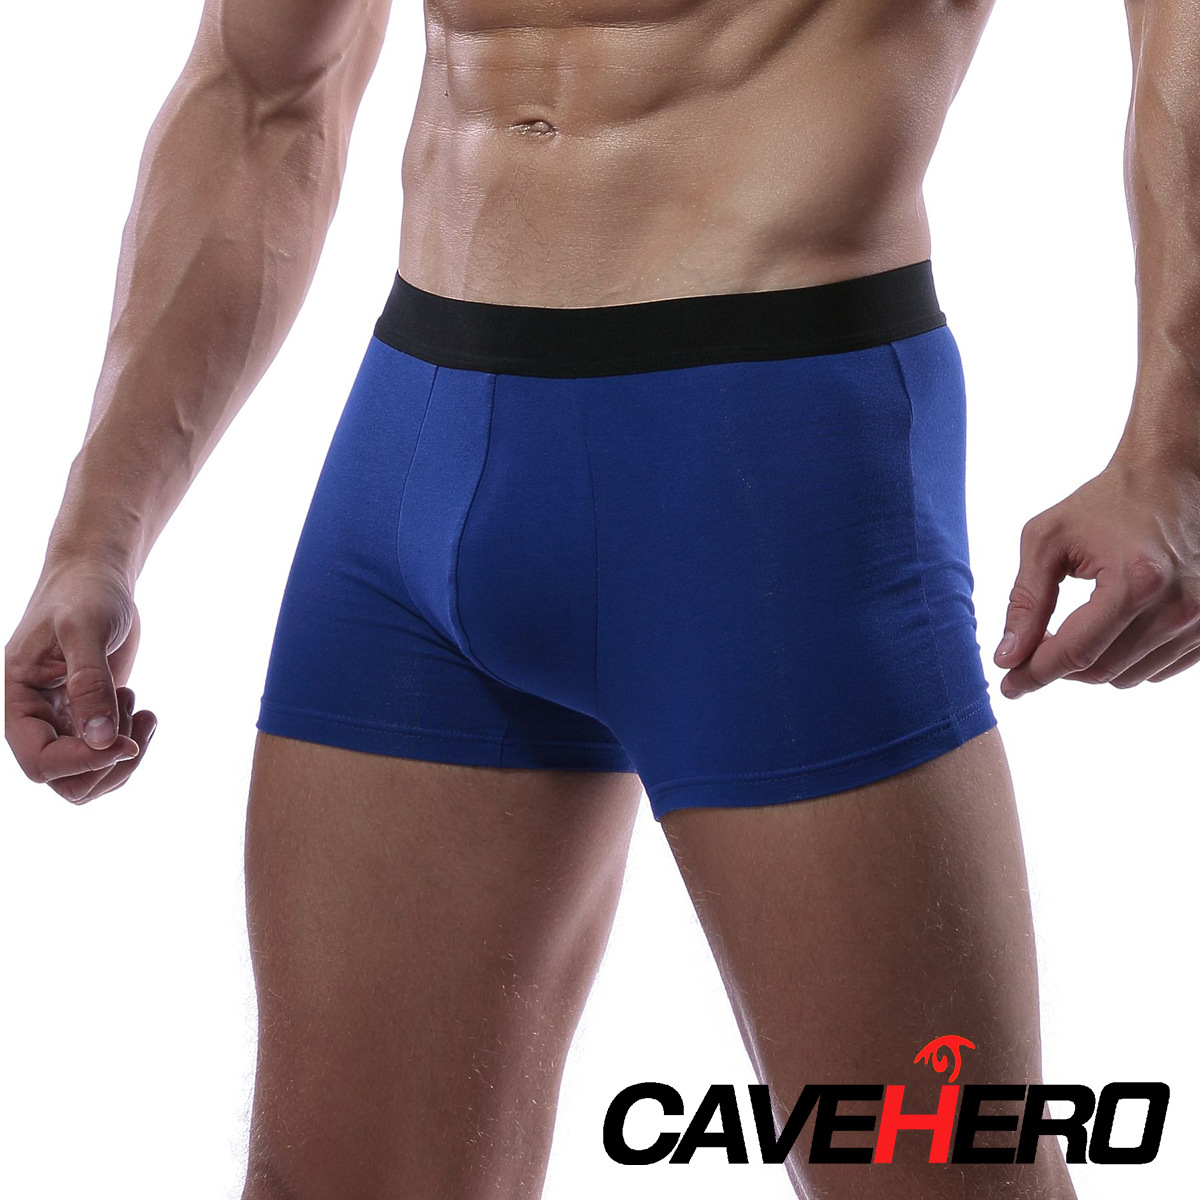 Micro Modal Cuecas Men Boxer Euiropean Men's Underwear Breathable Underpants Bamboo Underwear Mid-Waist Braid Underwear